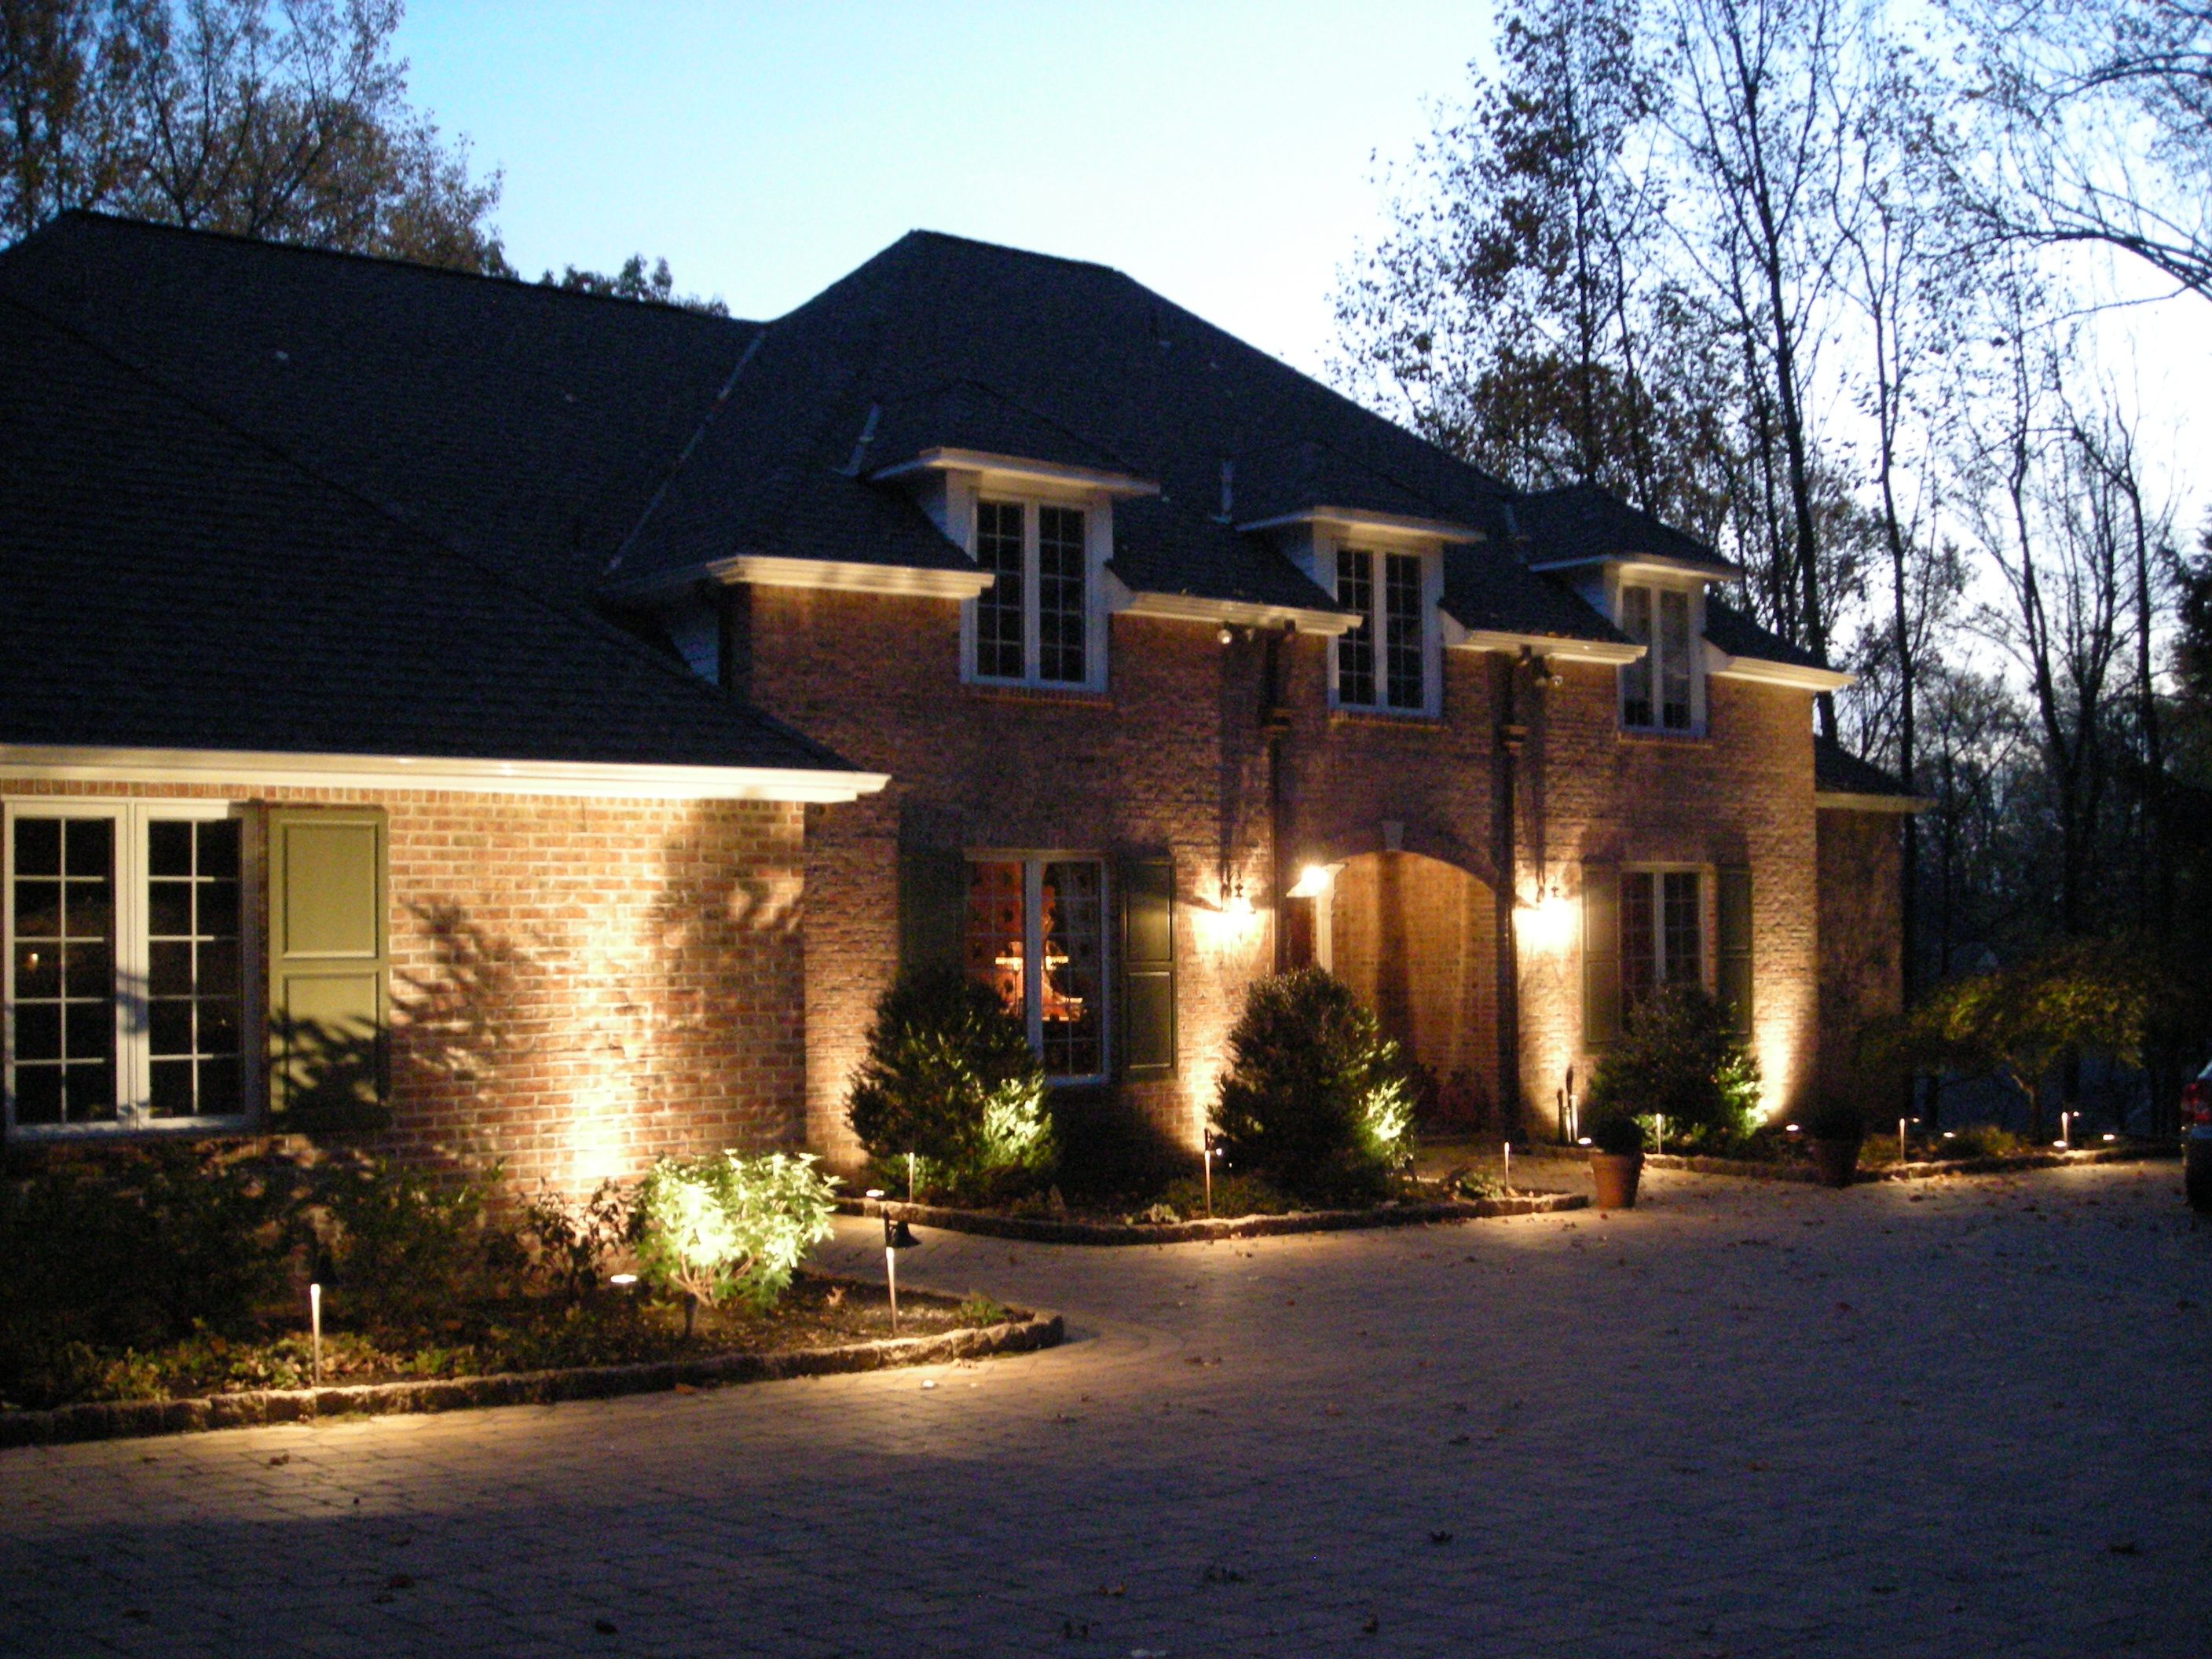 Spotlights And Floodlights Work Well To Highlight Trees Shrubs